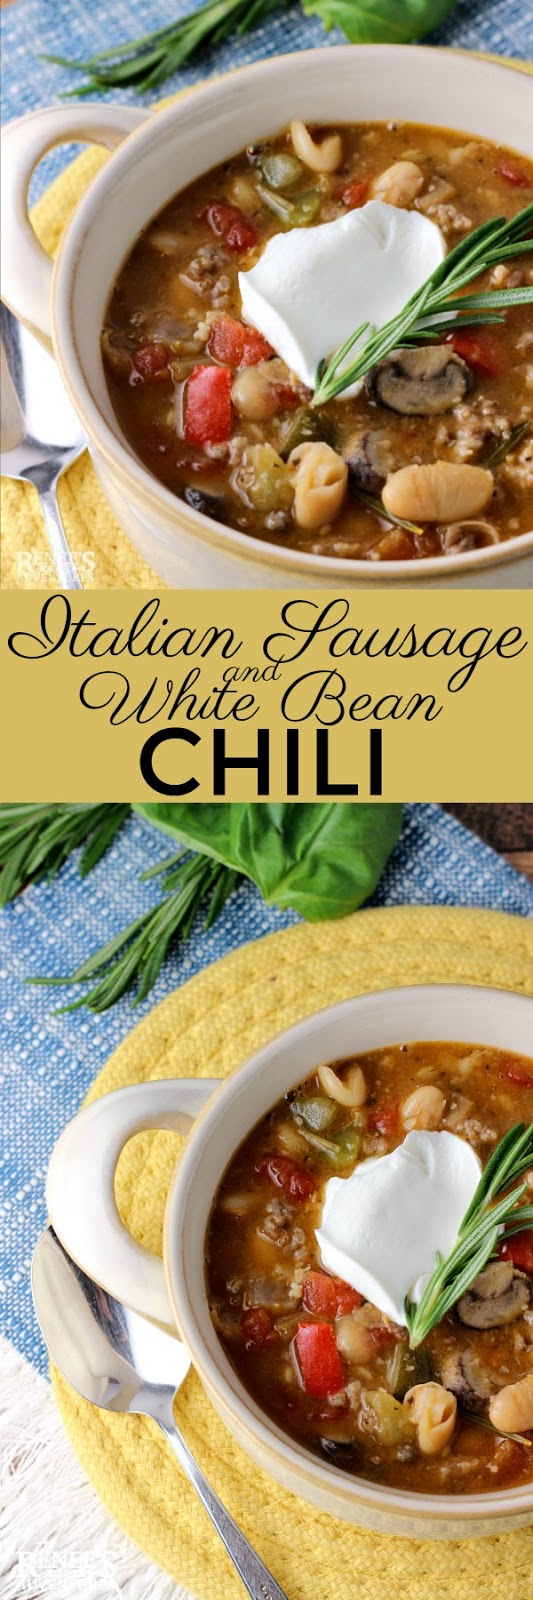 Italian Sausage and White Bean Chili made with Italian Pork Sausage and Cannellini beans pinnable image